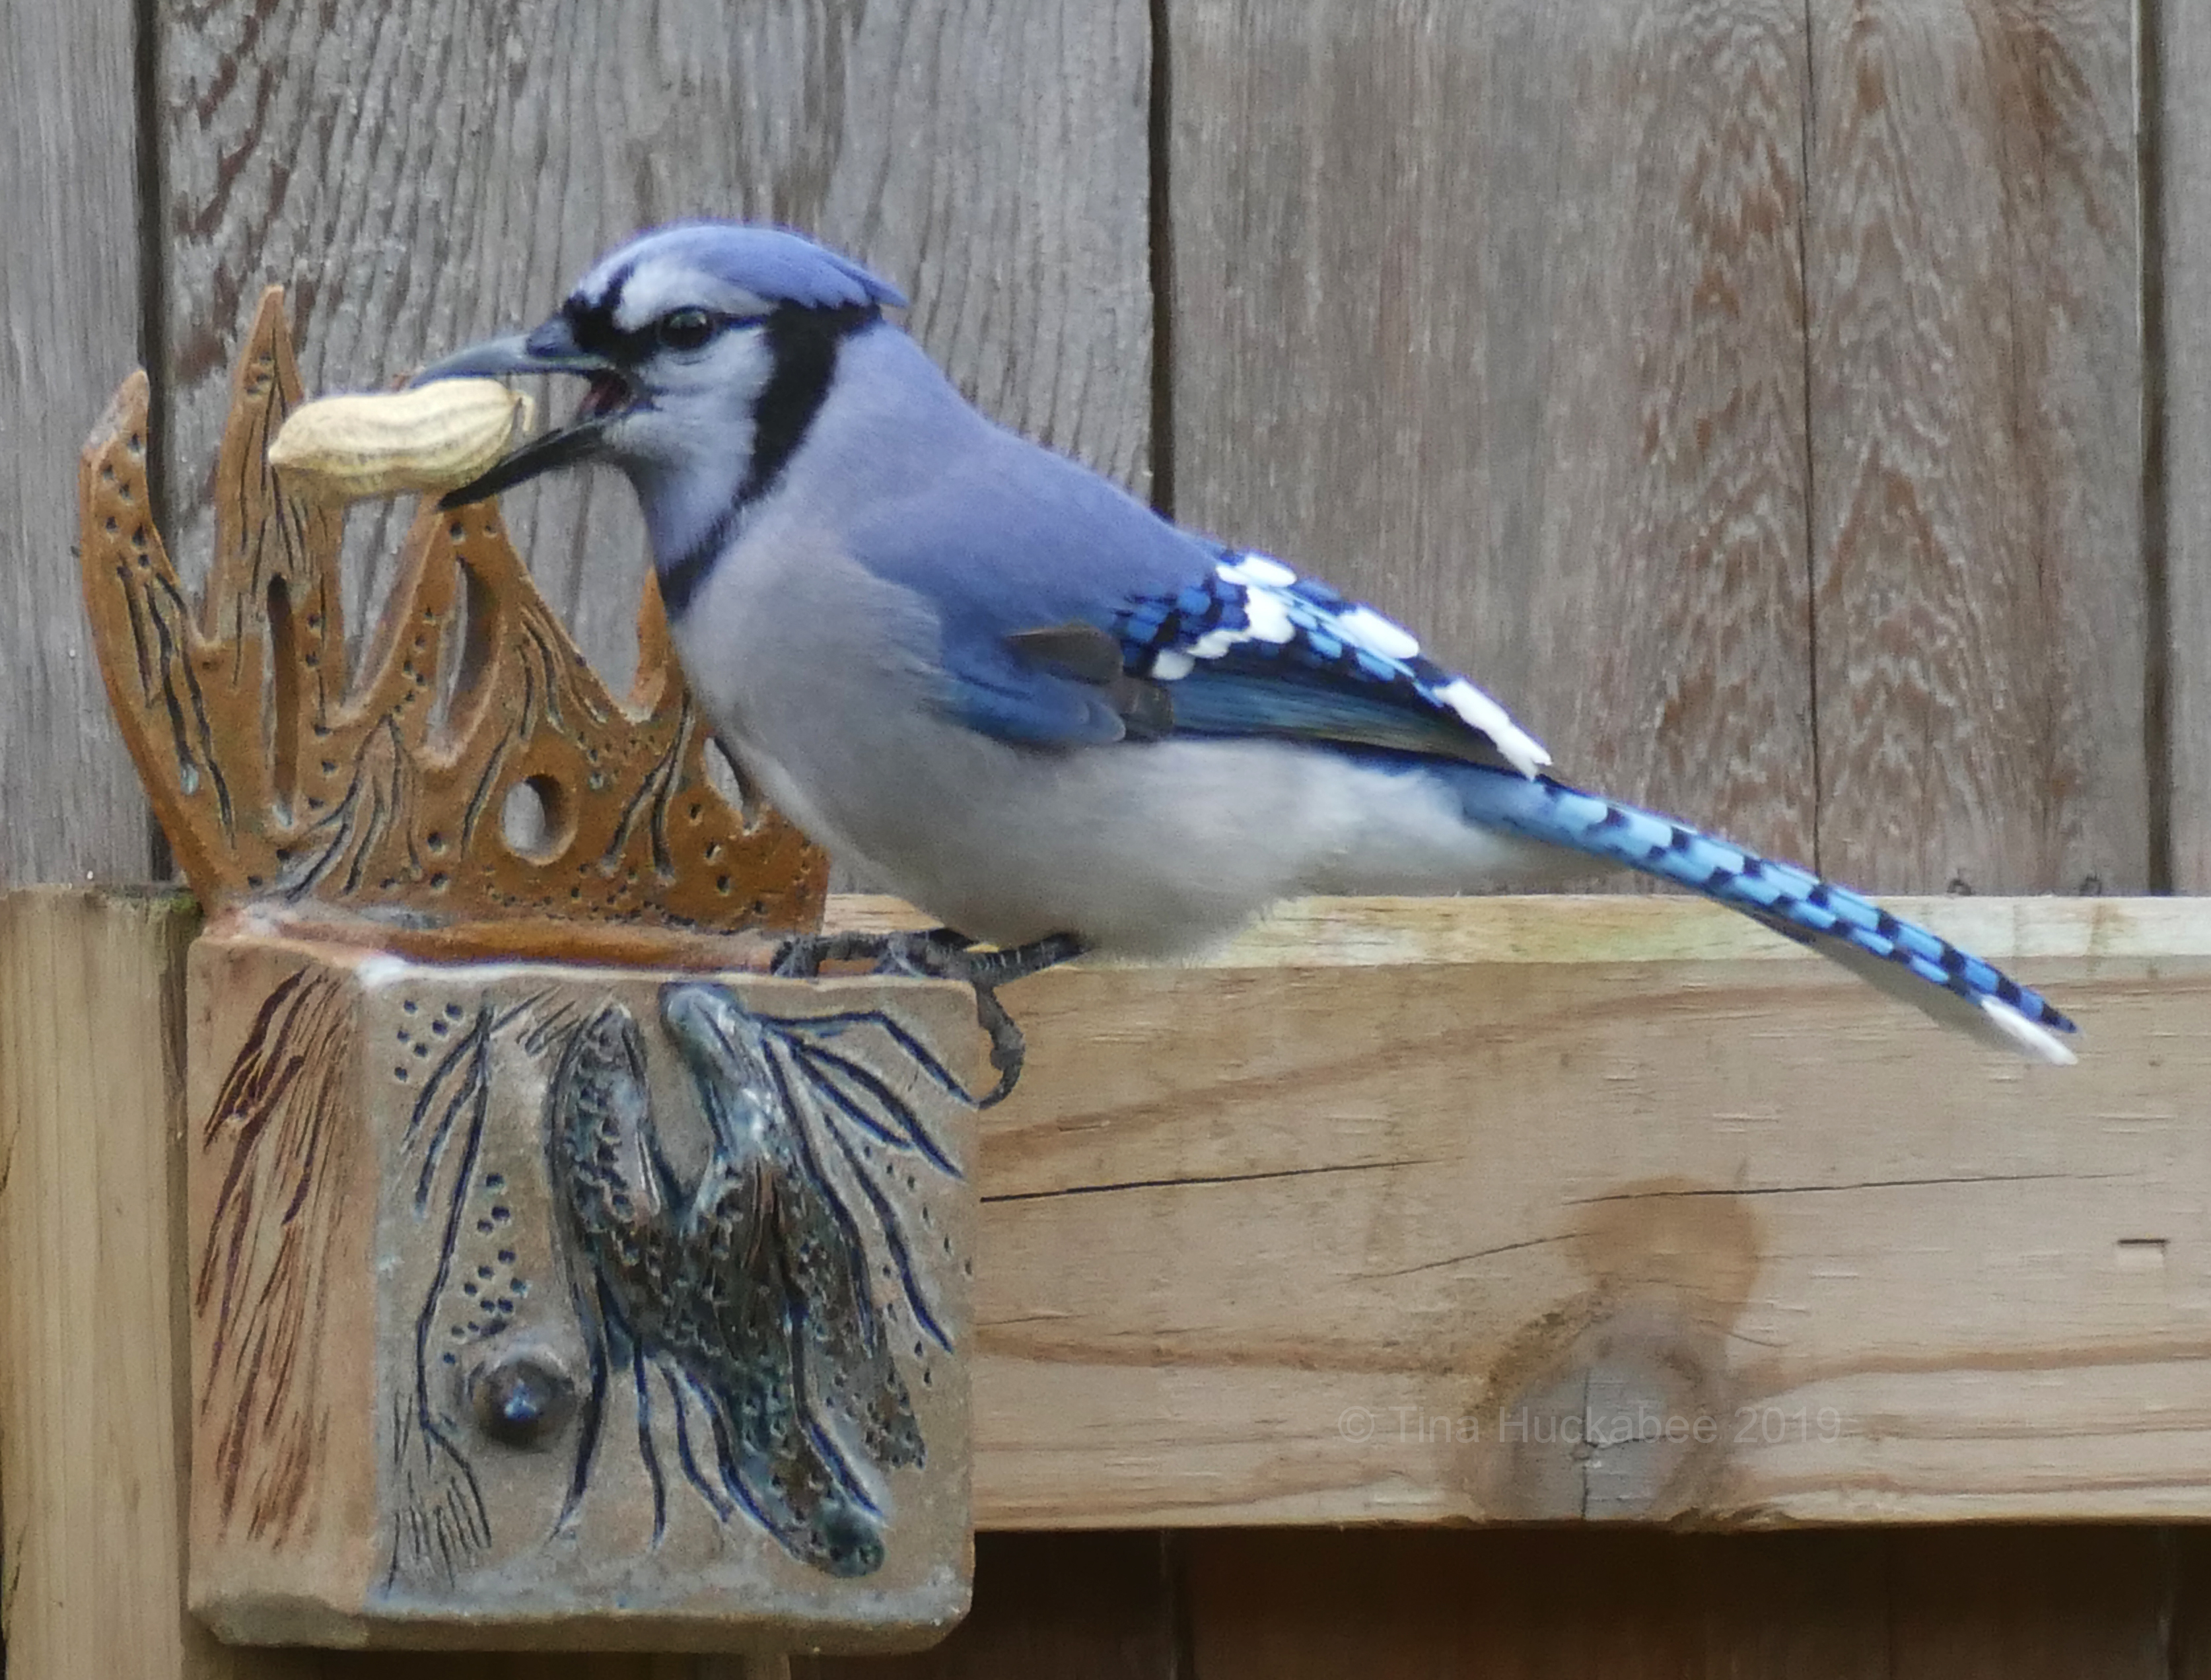 b6397c795 I've seen photos of Titmice and other birds enjoying unshelled peanuts, but  in my garden, it's only the Blue Jays who partake.